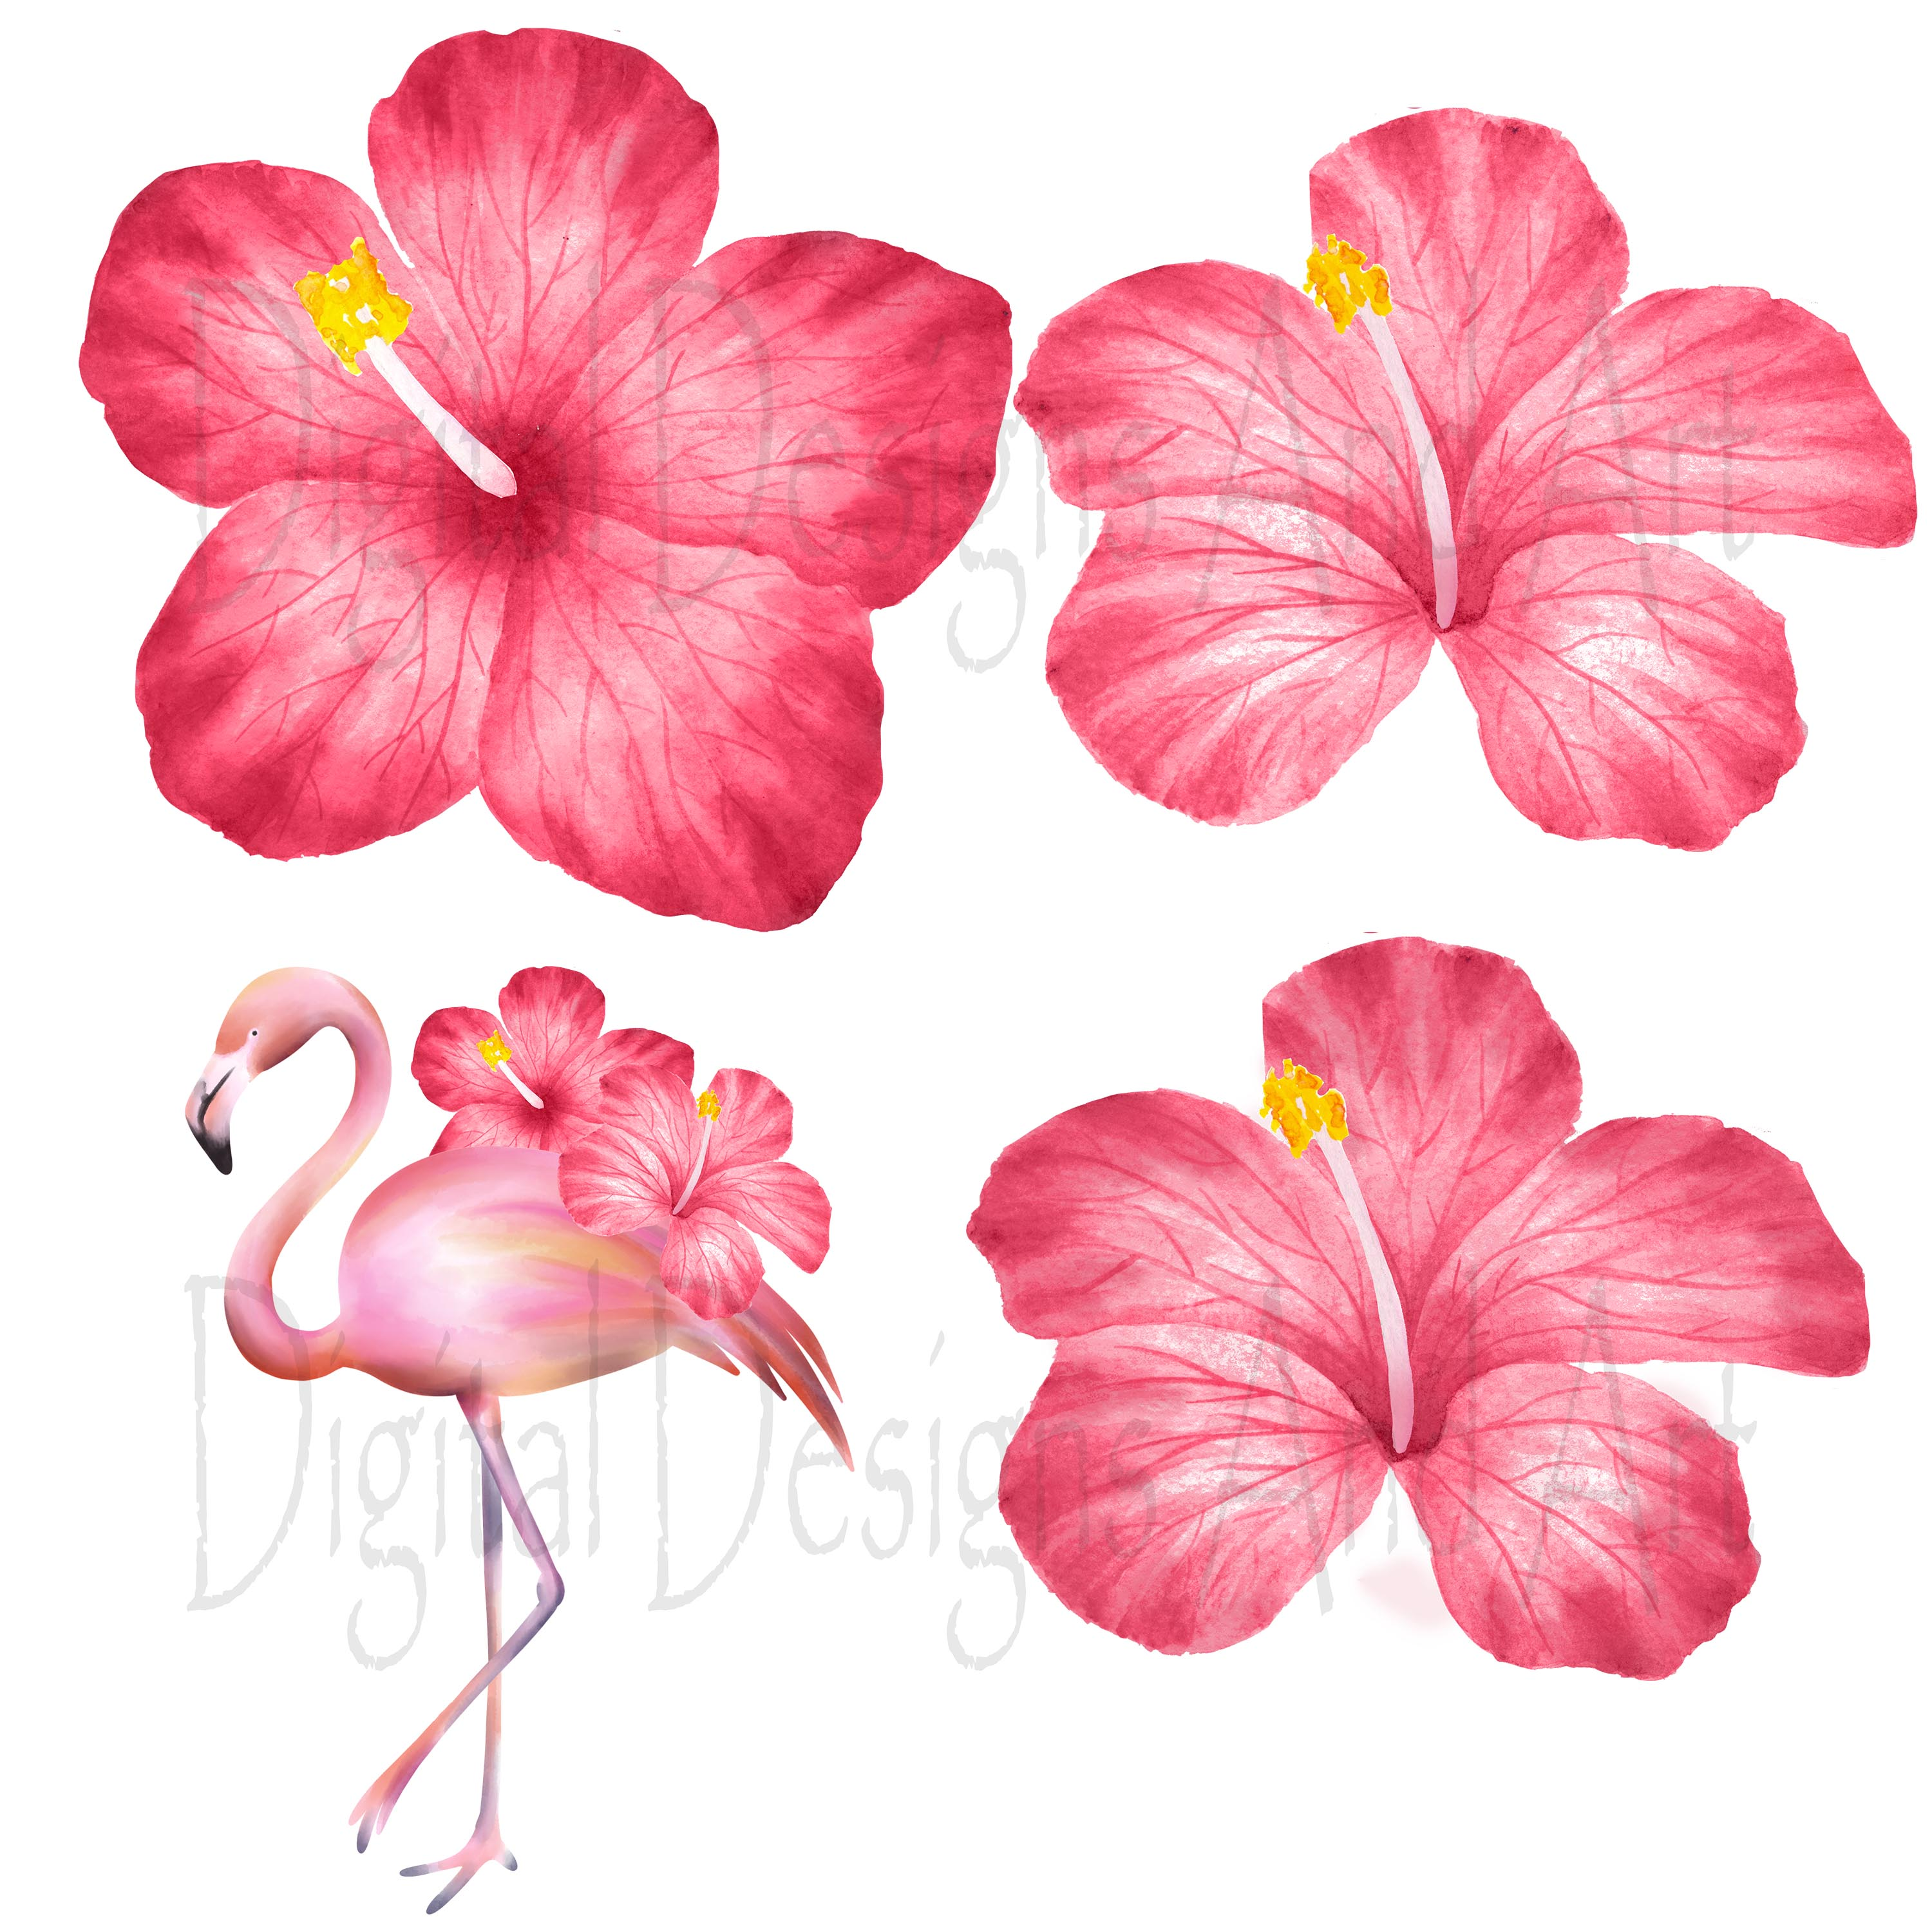 Pink flamingo clipart example image 6